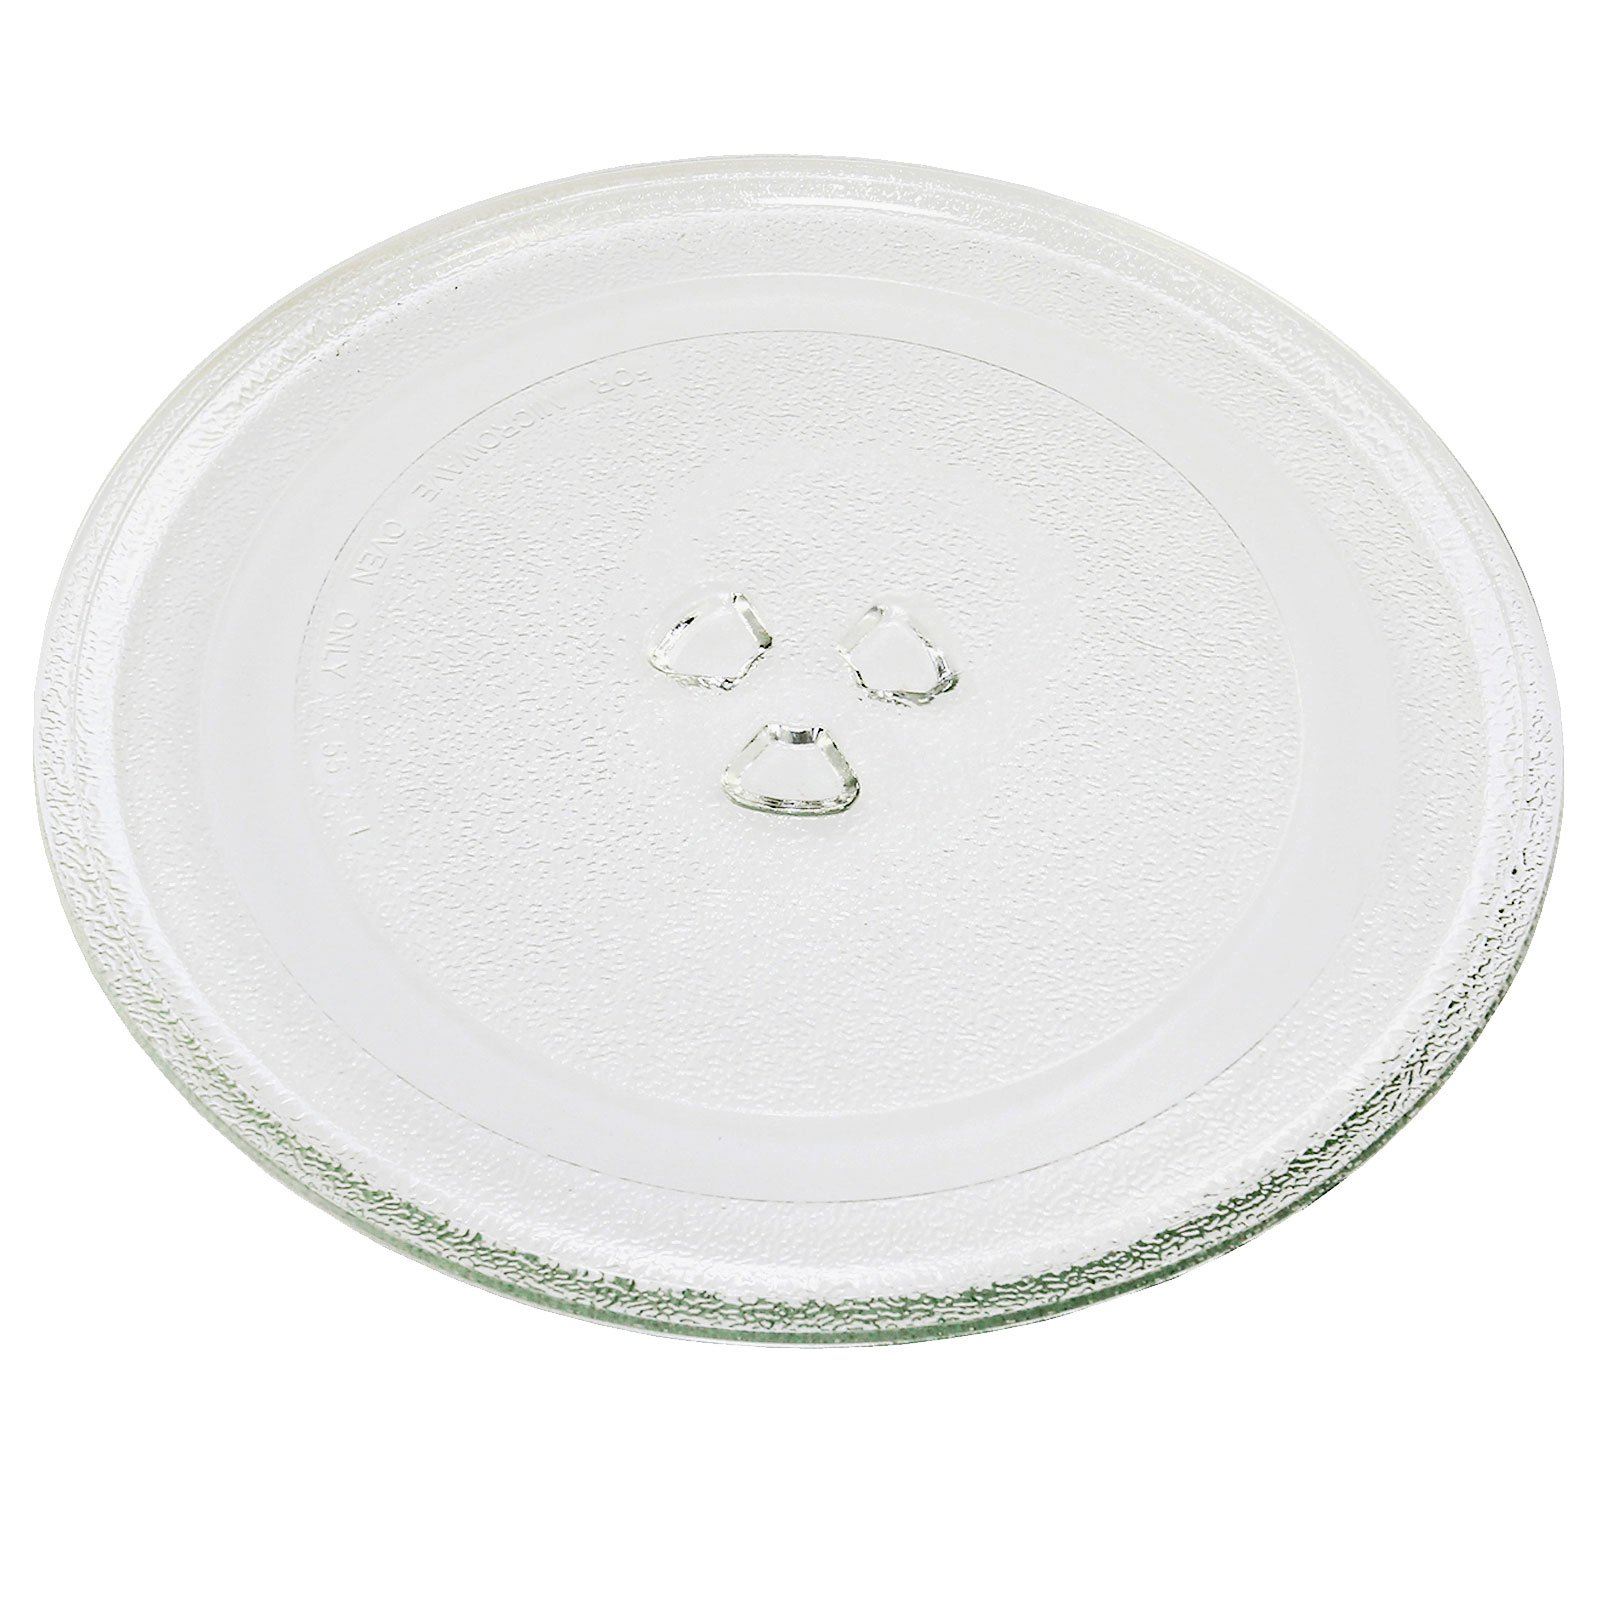 First4Spares Universal Replacement Glass 3 Fixing Turntable Plate for Microwave Ovens - 245mm (9 1/2'')